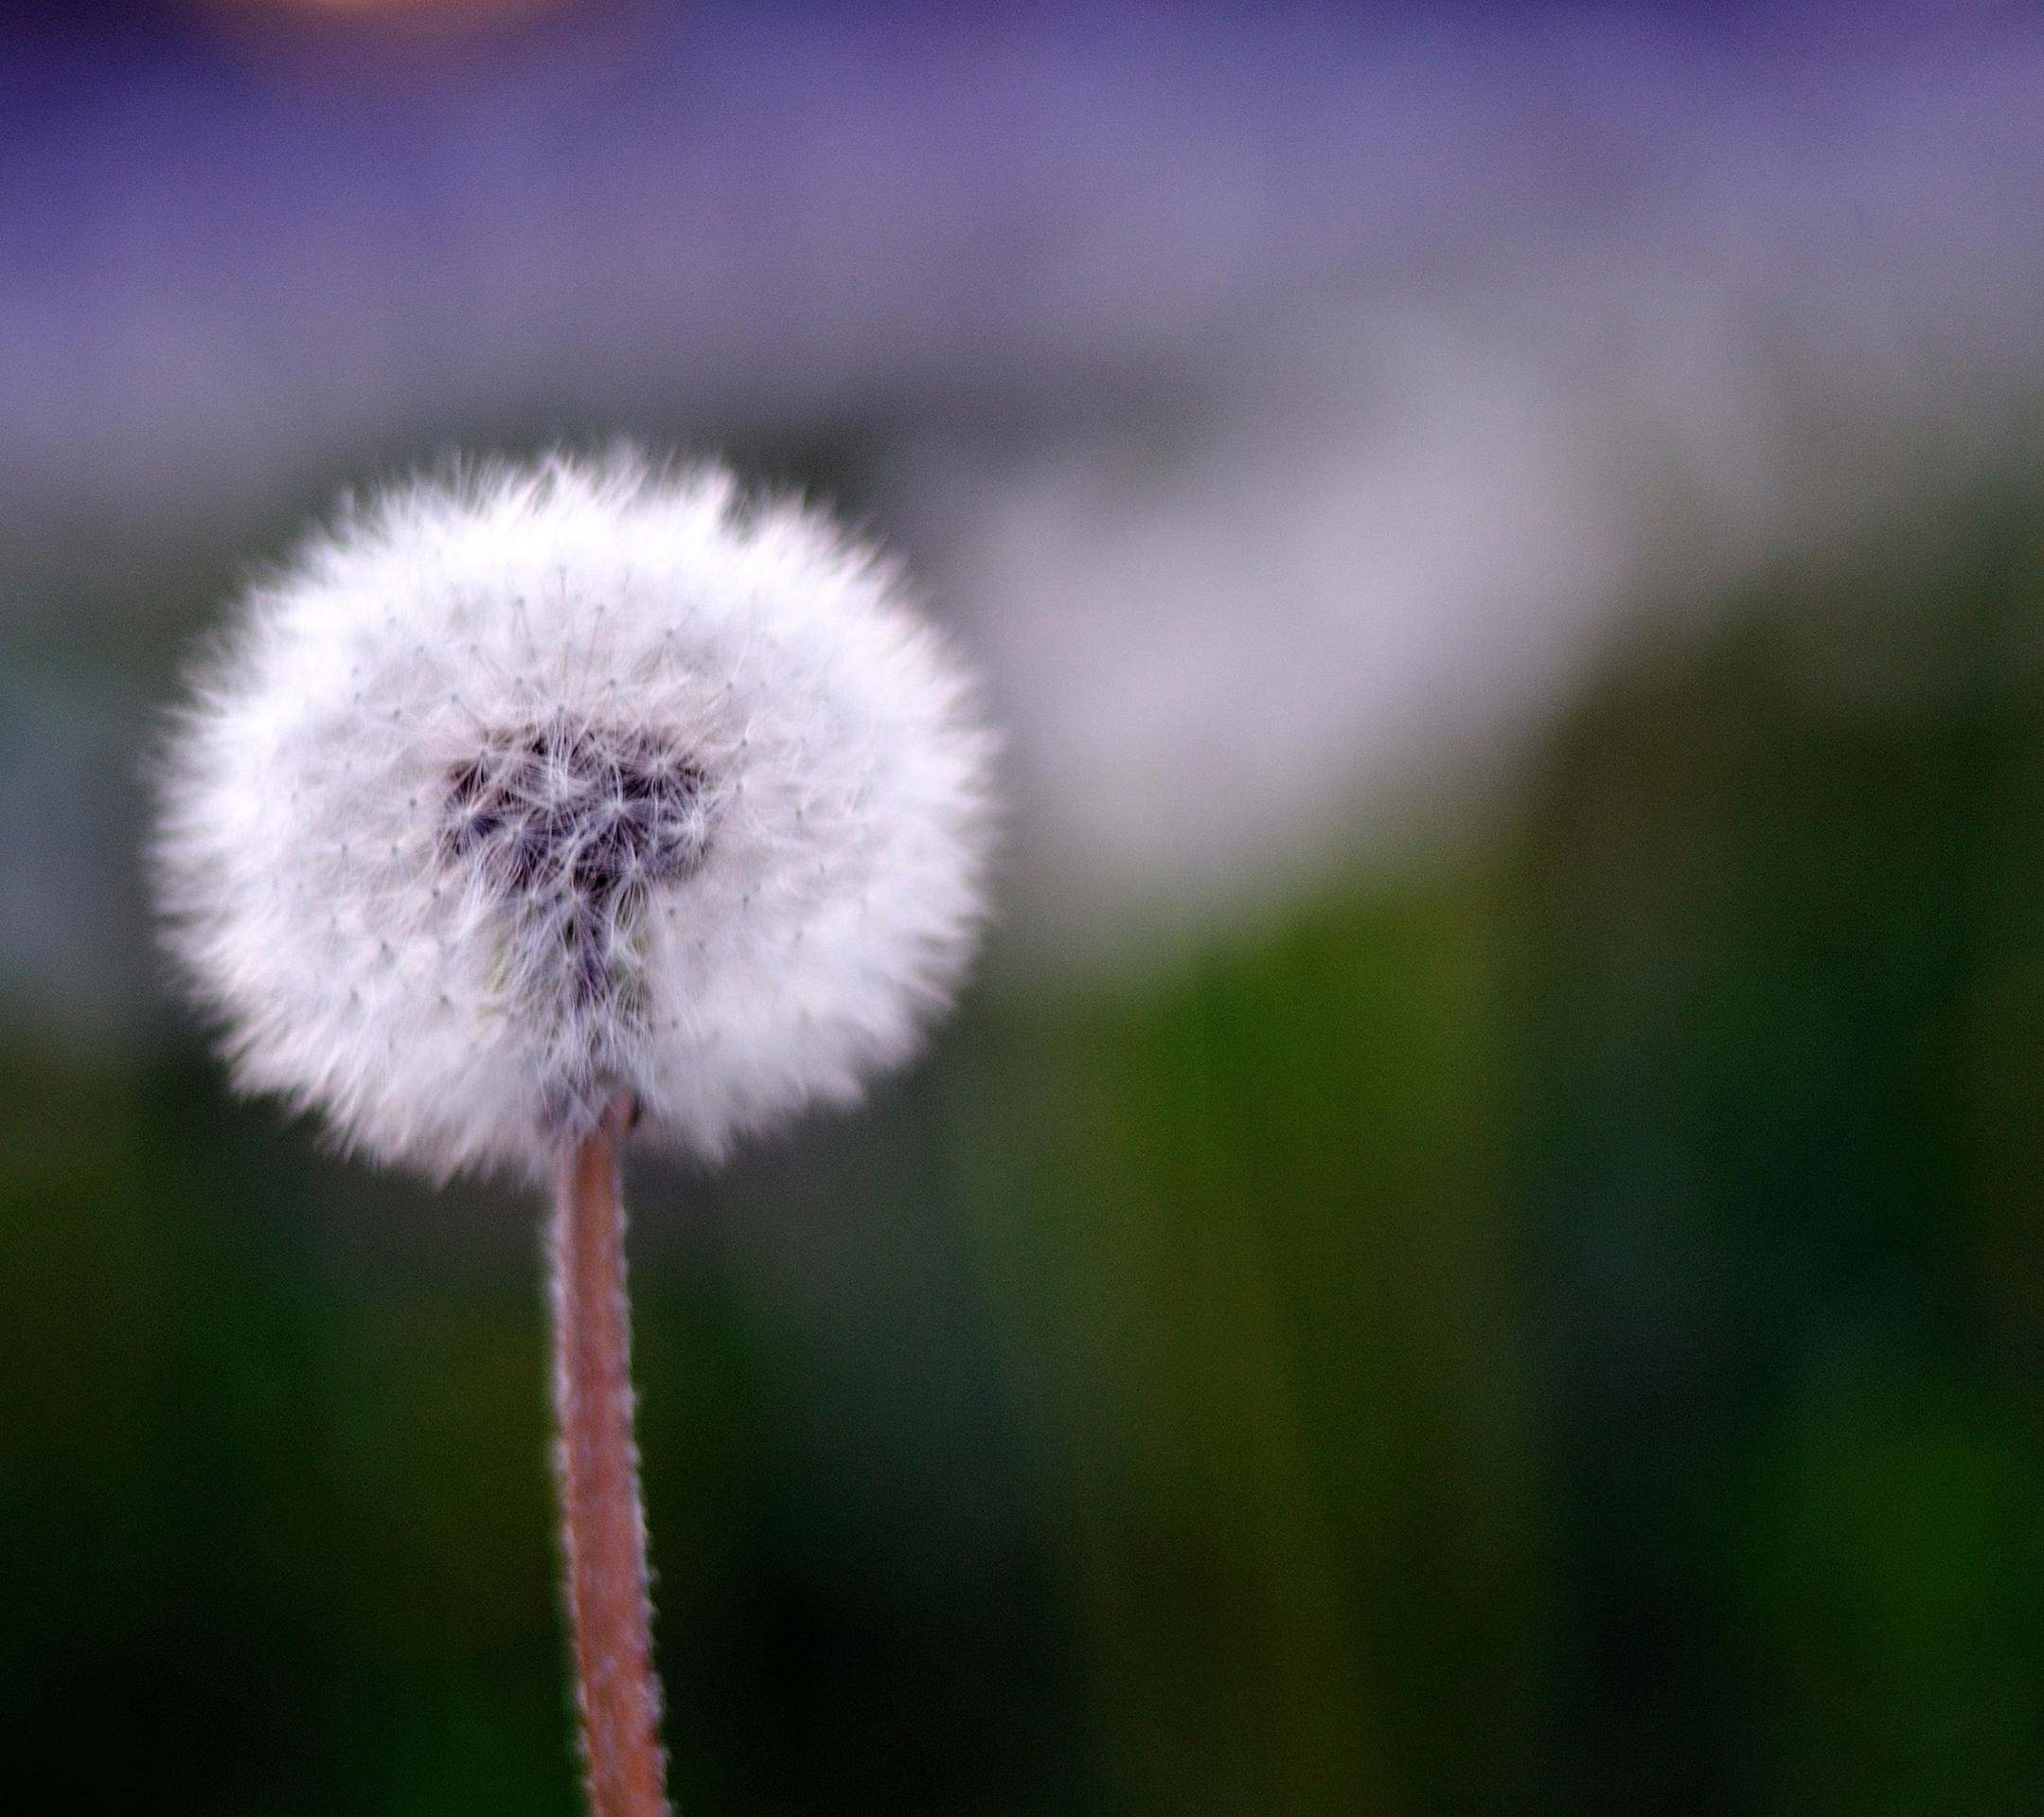 samsung galaxy s4 wallpapers-spring-dandelion.jpg